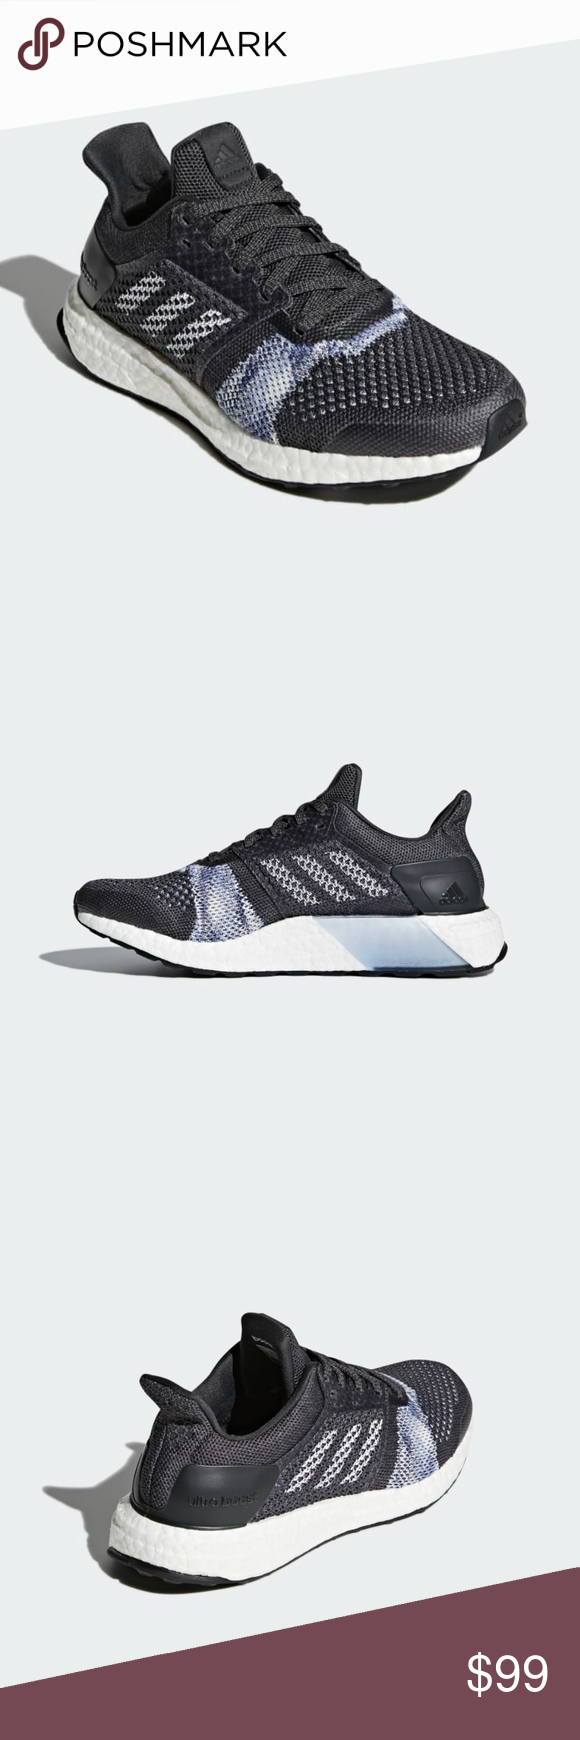 e76b4cc79e6 ADIDAS ULTRABOOST ST SHOES CQ2134 ULTRABOOST ST SHOES HIGH-PERFORMANCE  STABILITY RUNNING SHOES WITH RESPONSIVE